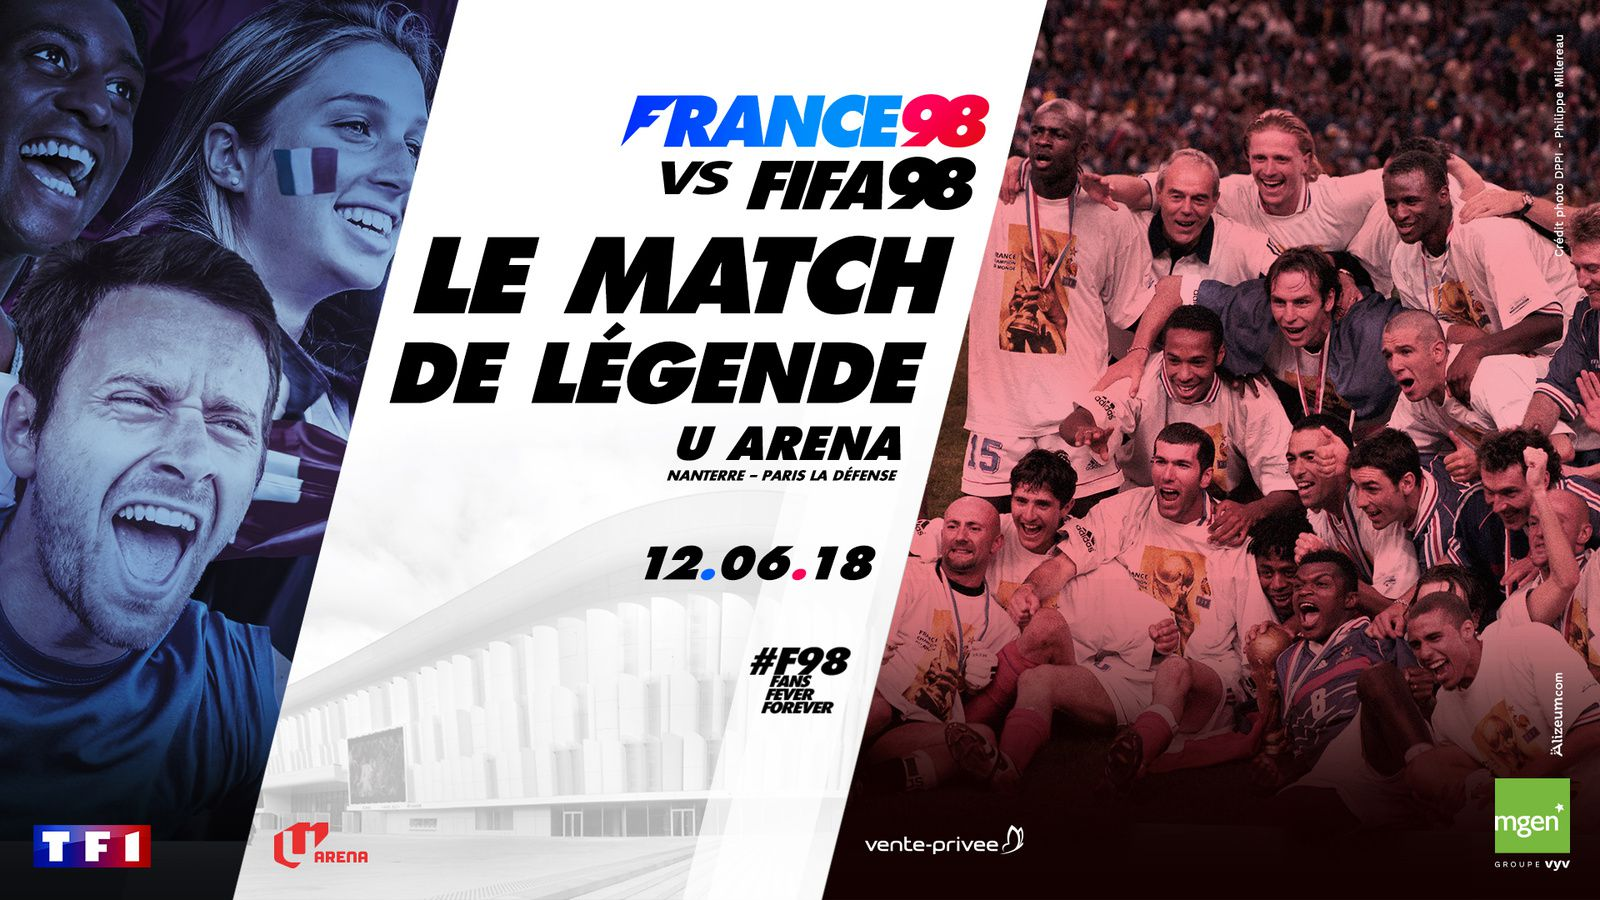 FRANCE 98 vs FIFA 98 - Match de légende, ce soir à 21h en direct sur TF1